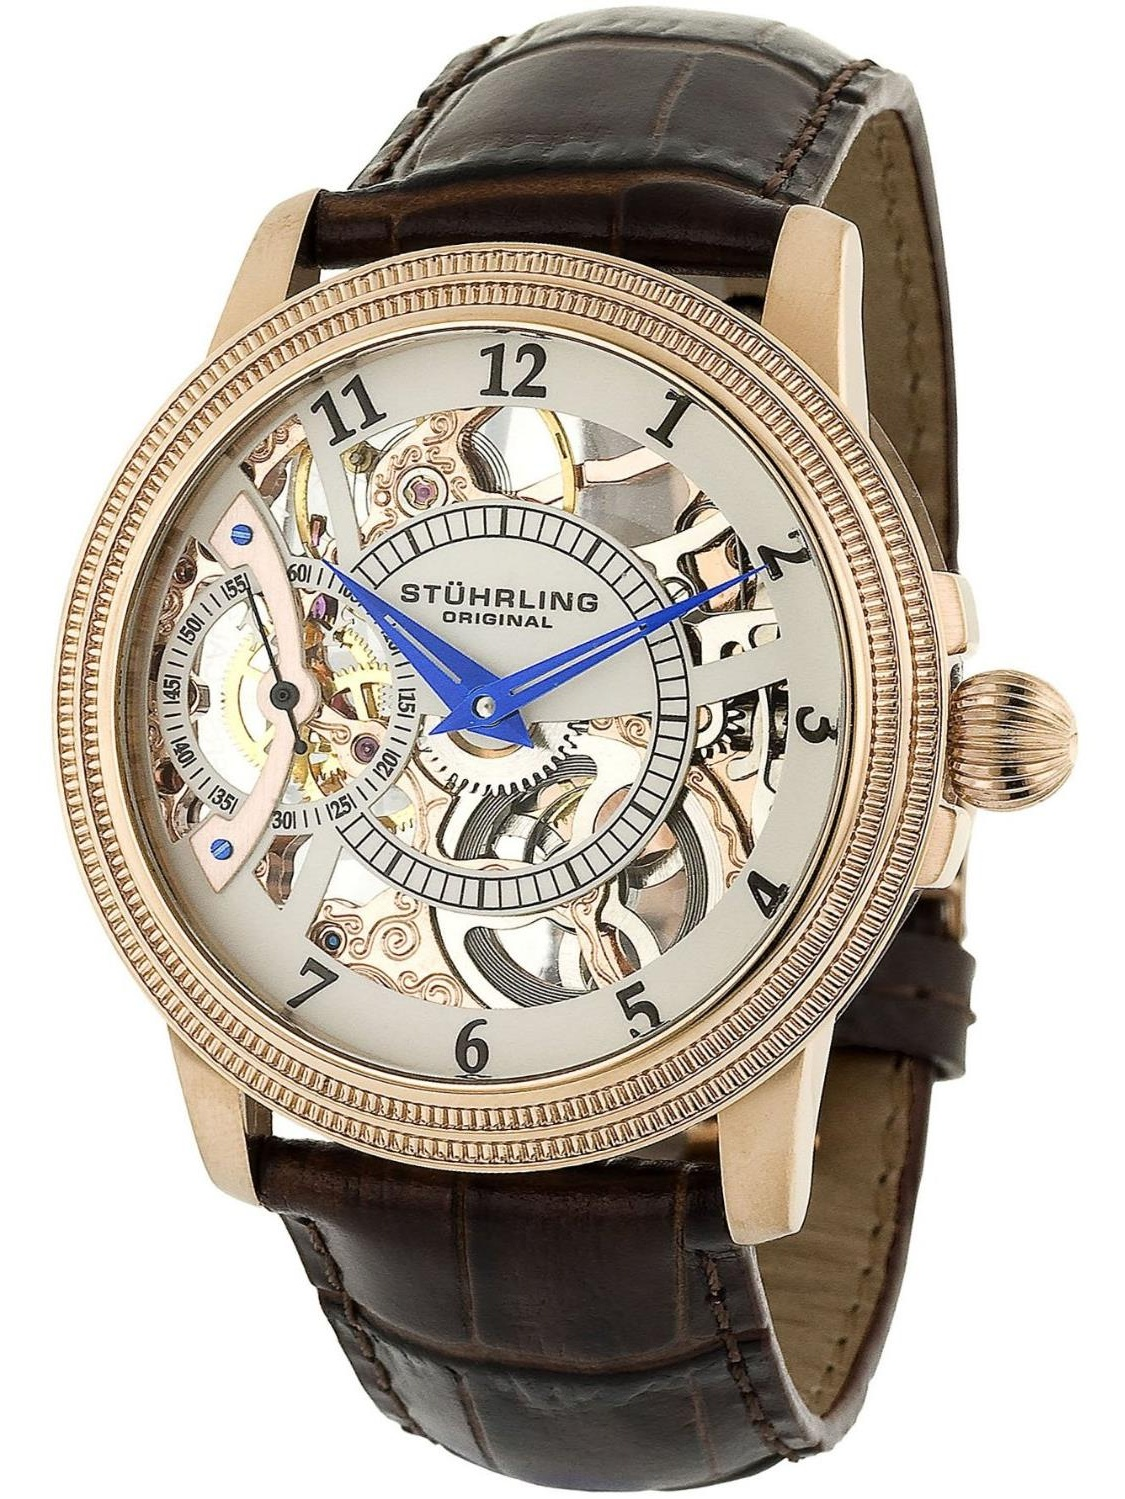 Stuhrling 228.33452 44mm  Stainless Steel Case Brown Calfskin krysterna Men's Watch